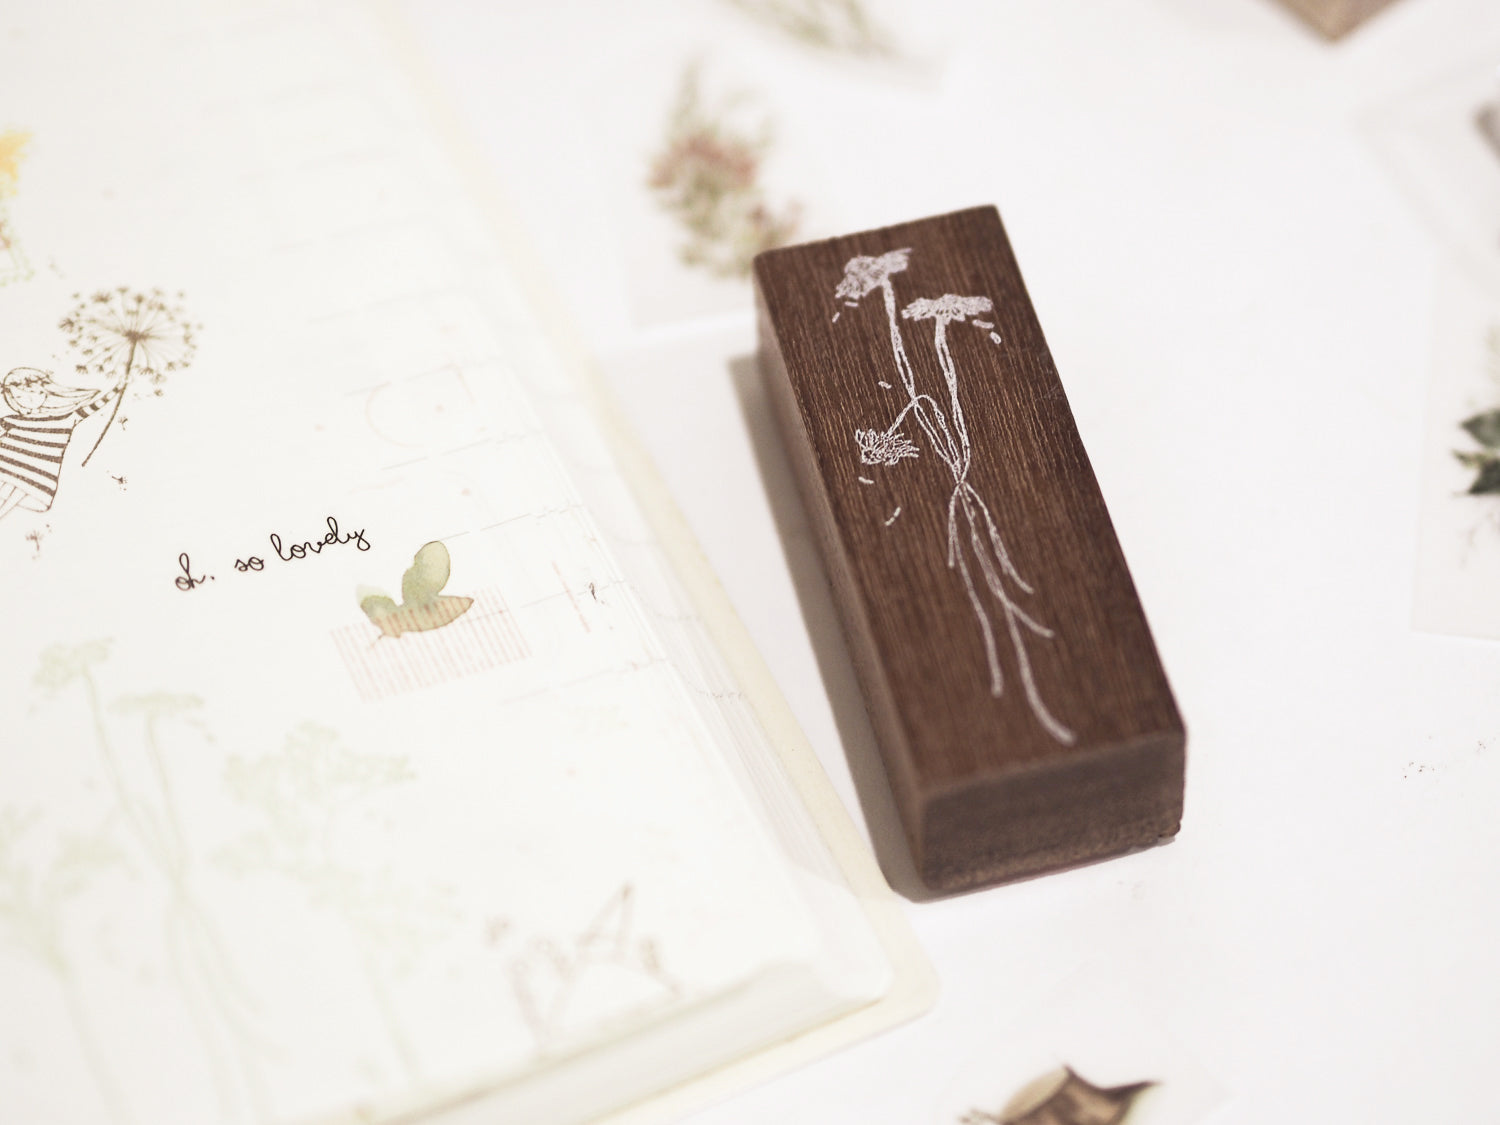 Blinks of Life Journal Shop - Jieyanow Atelier